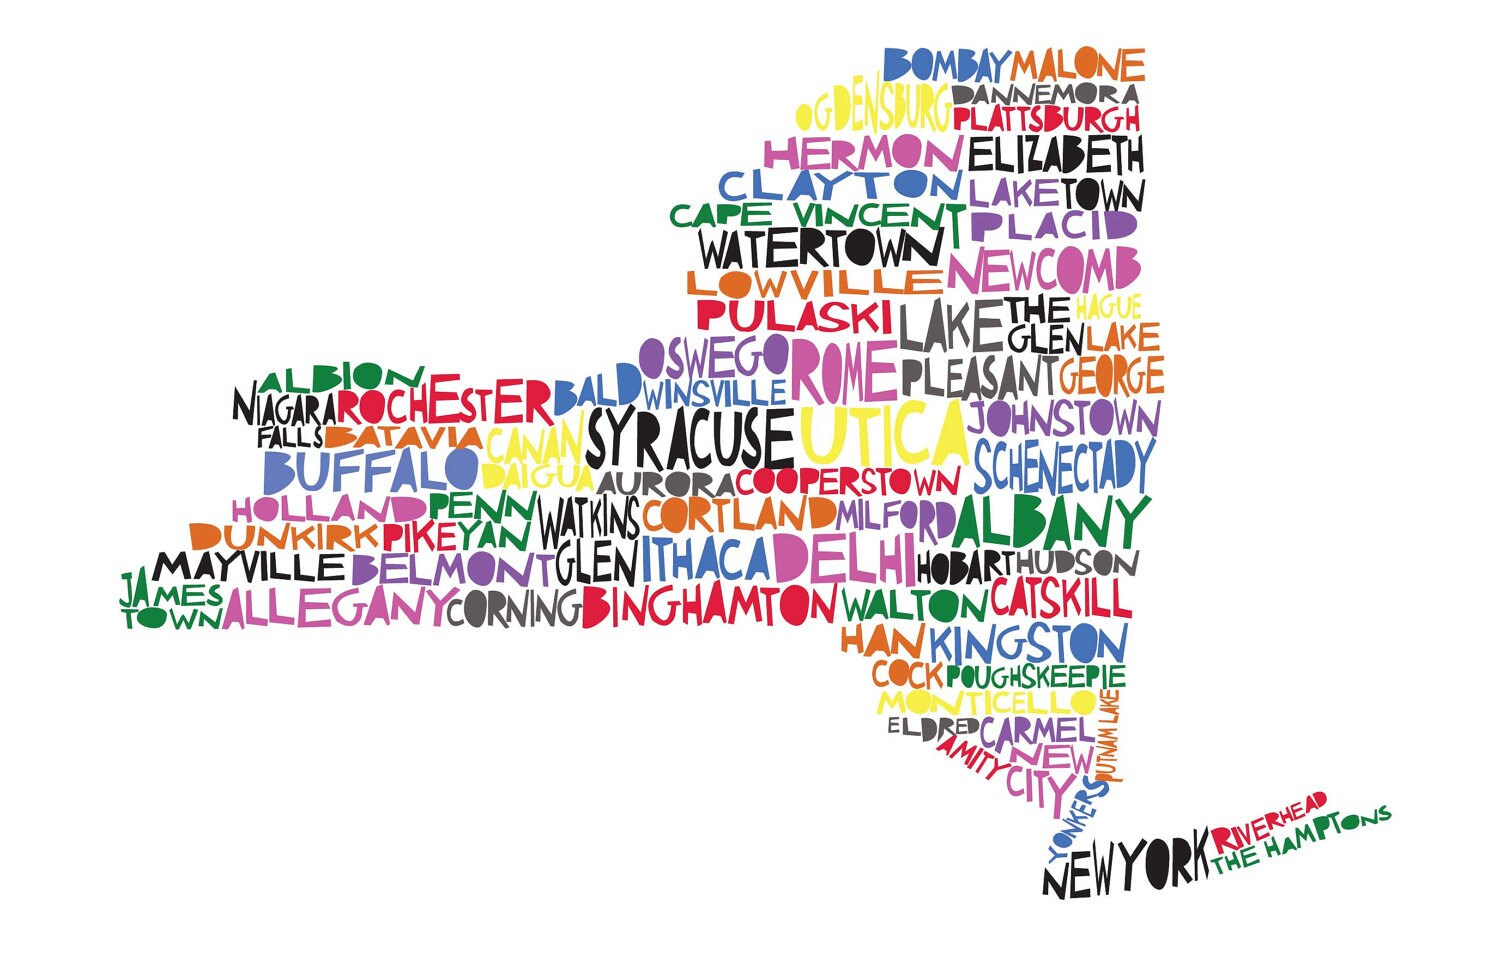 NEW YORK State Map With Cities Listed Digital Illustration